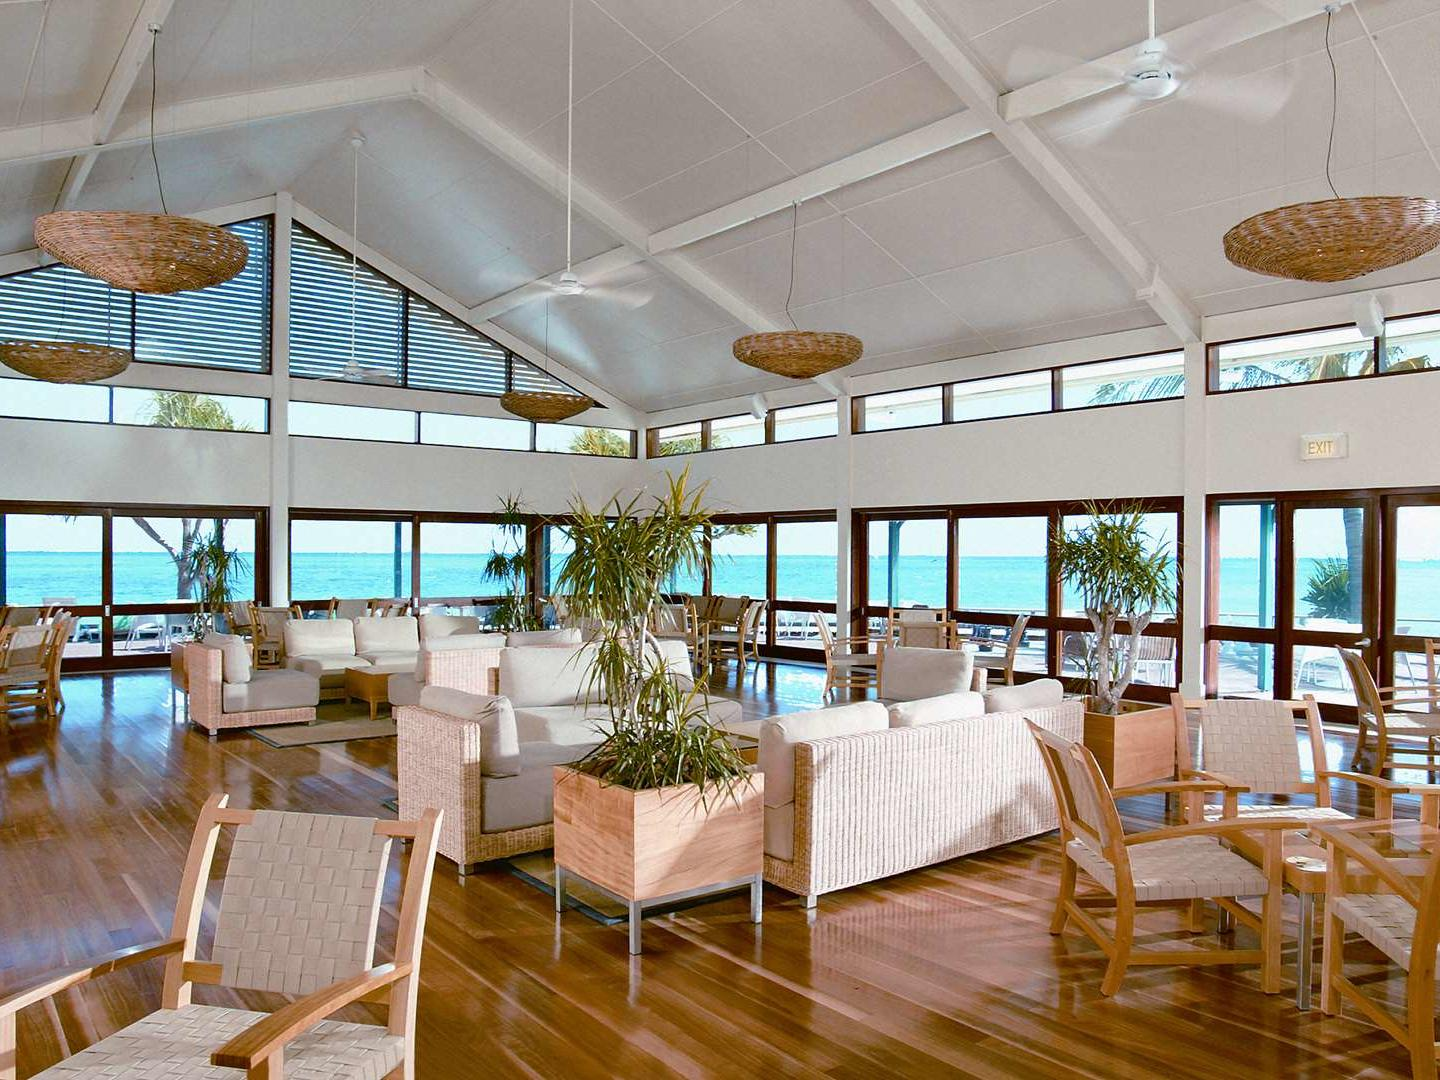 Pandanus Lounge at Heron Island Resort in Queensland, Australia